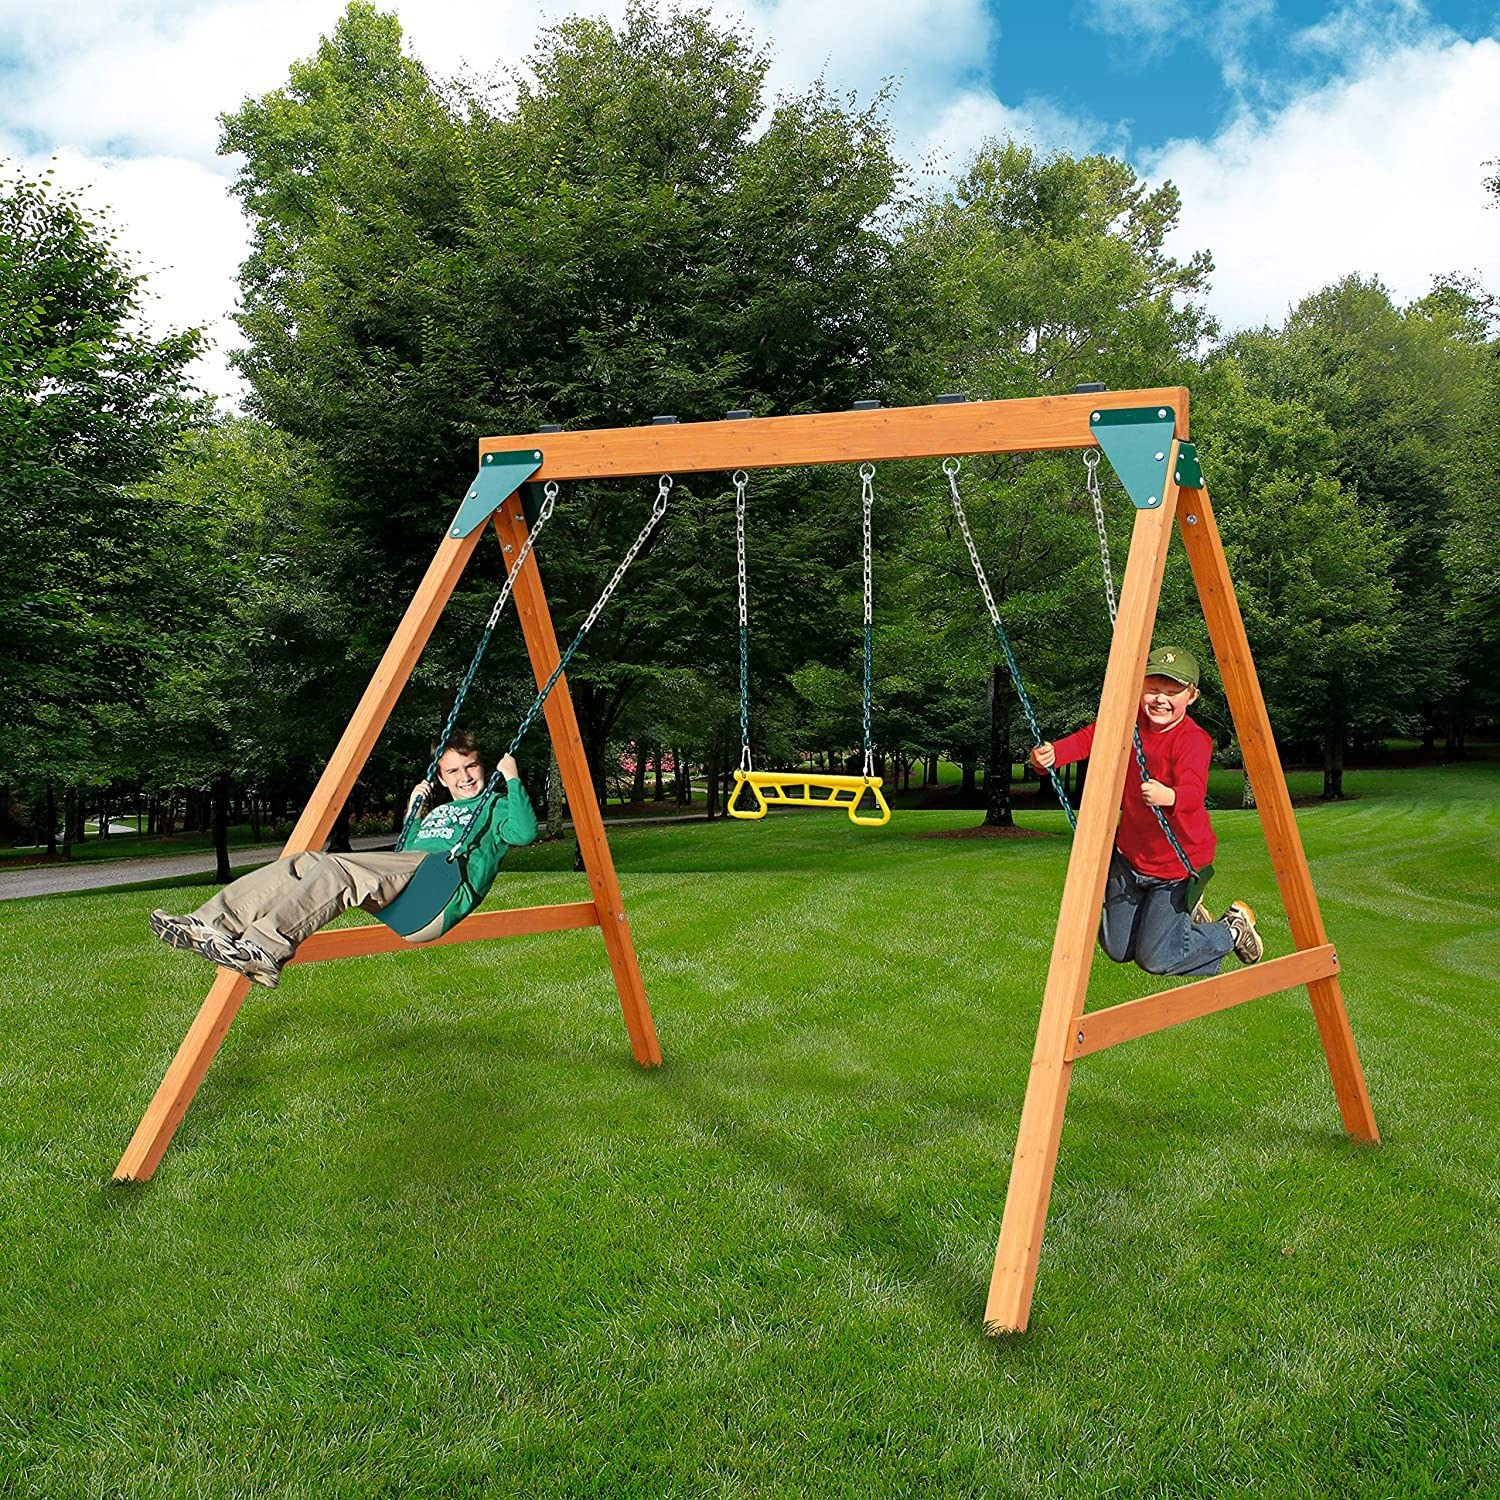 a swing set with two swings and a trapeze bar in the middle